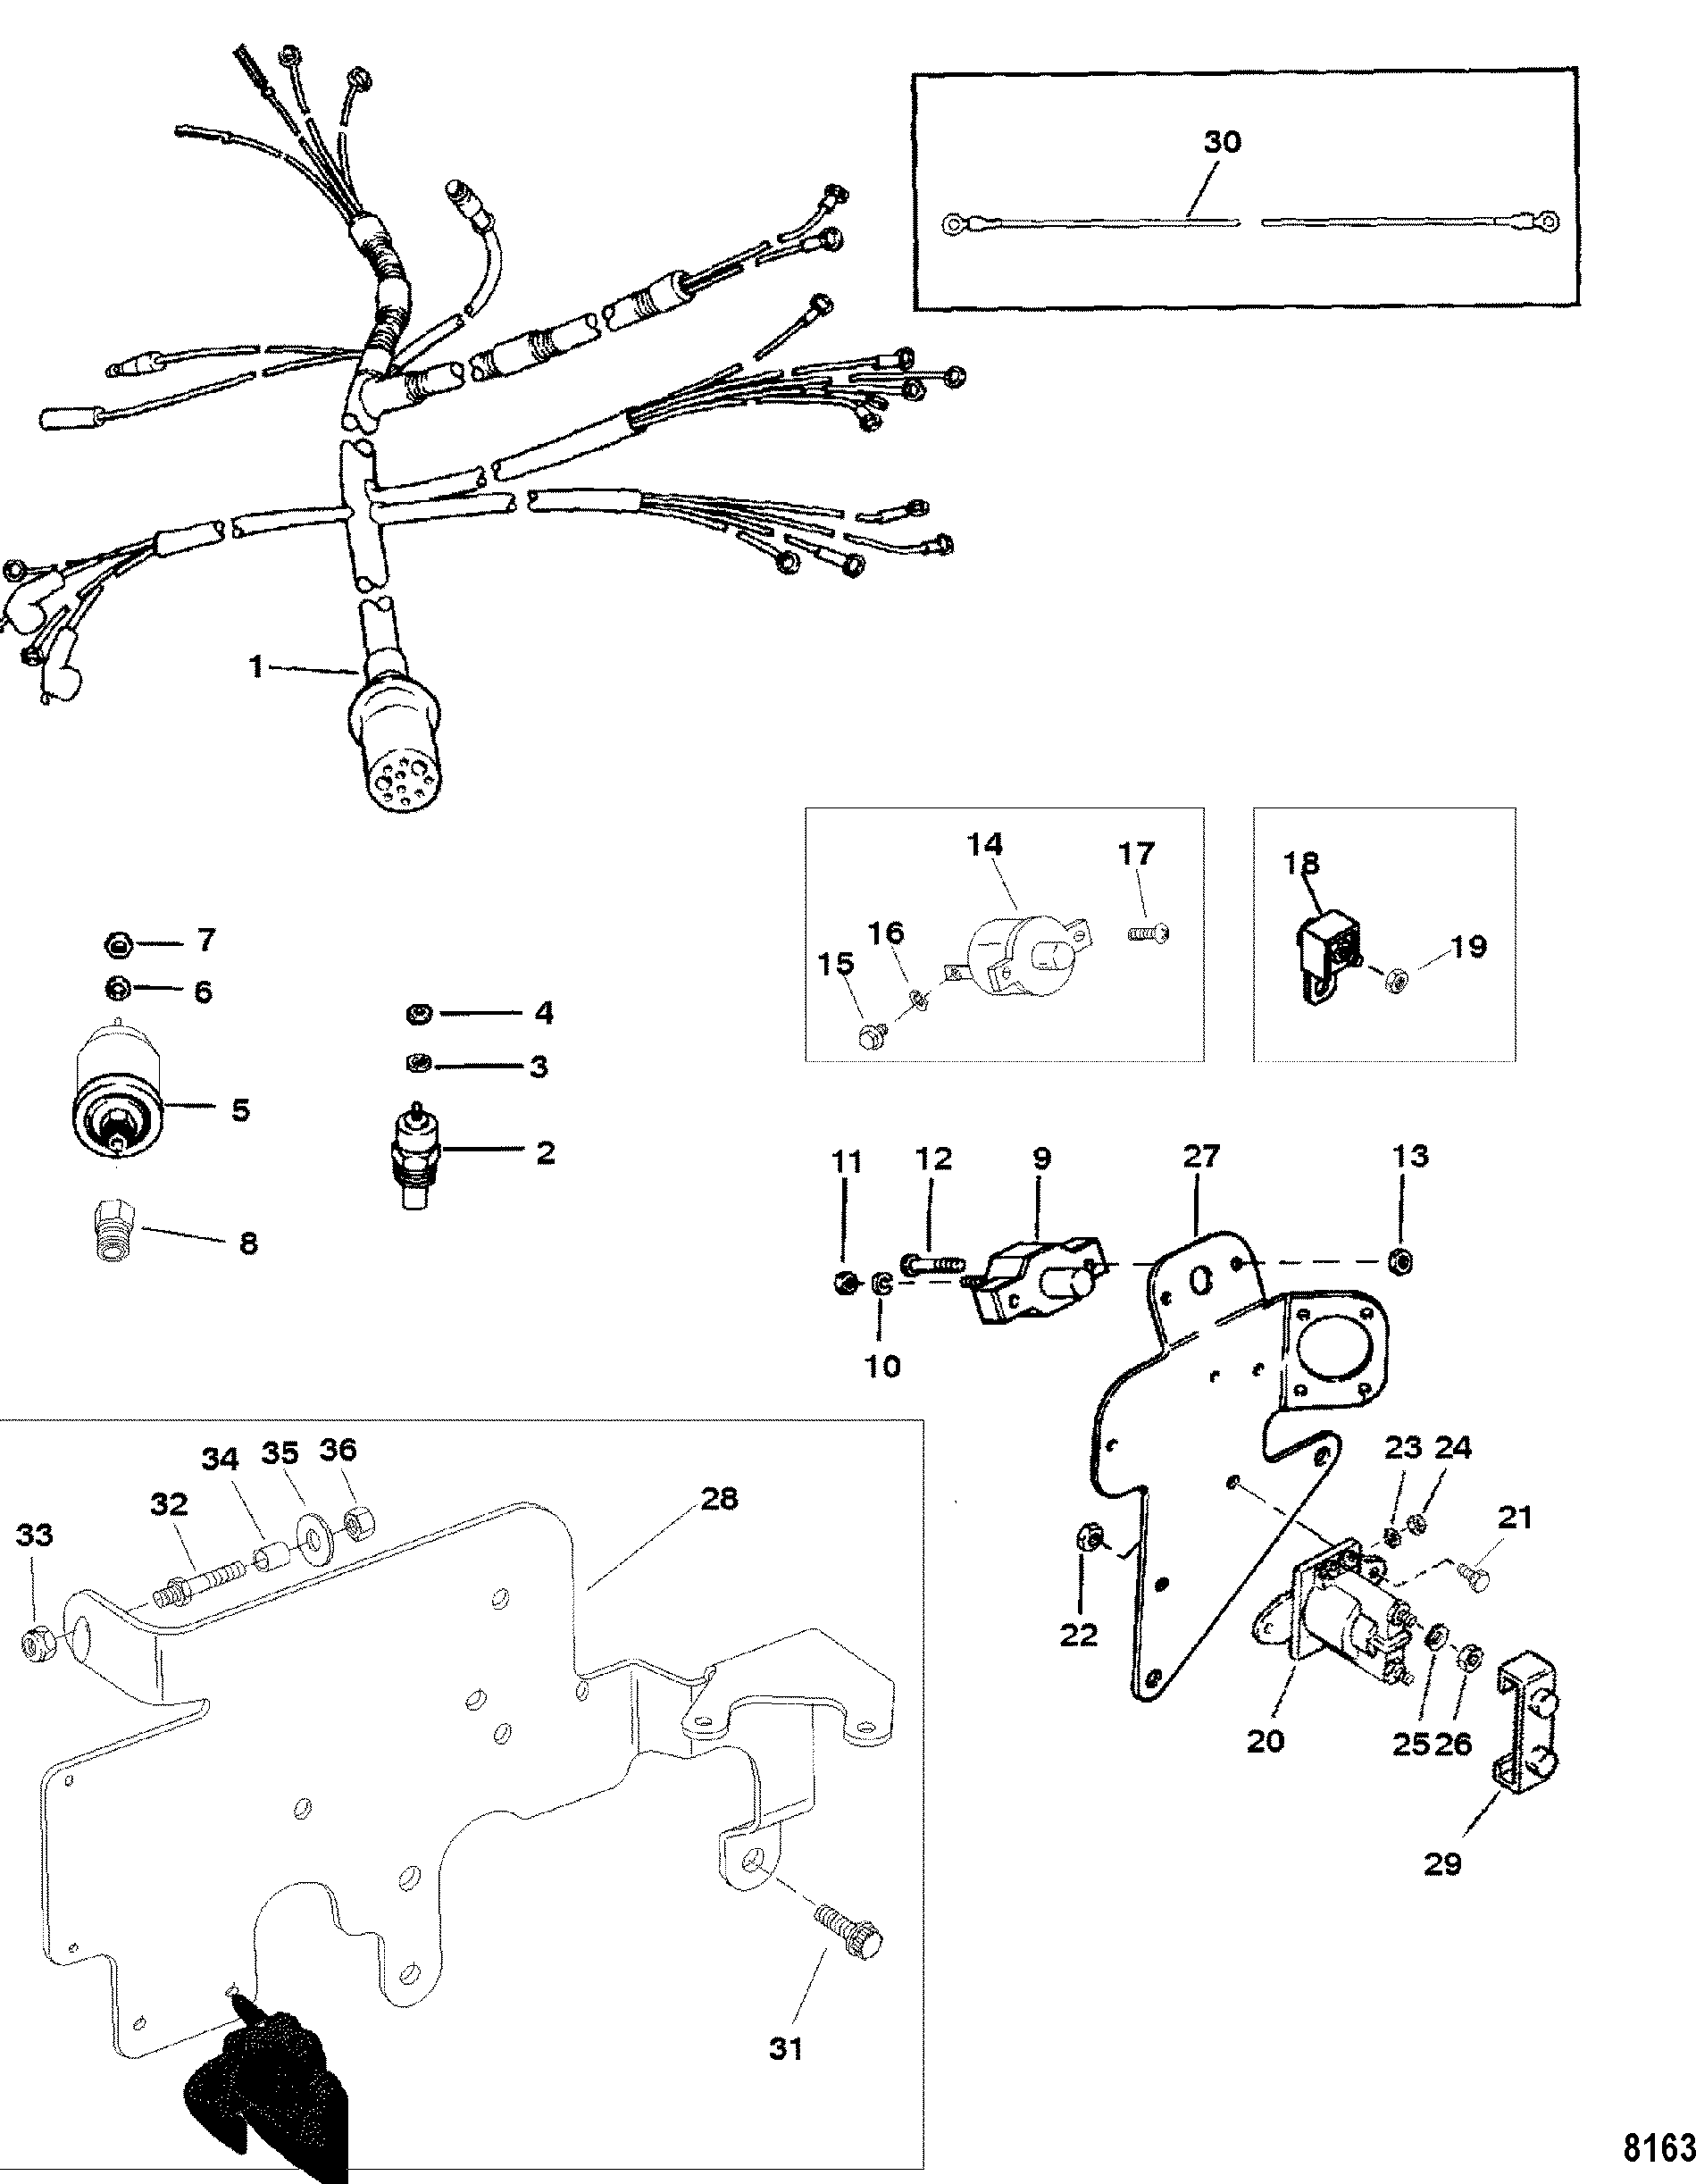 Wiring Harness And Electrical Components For Mercruiser 3